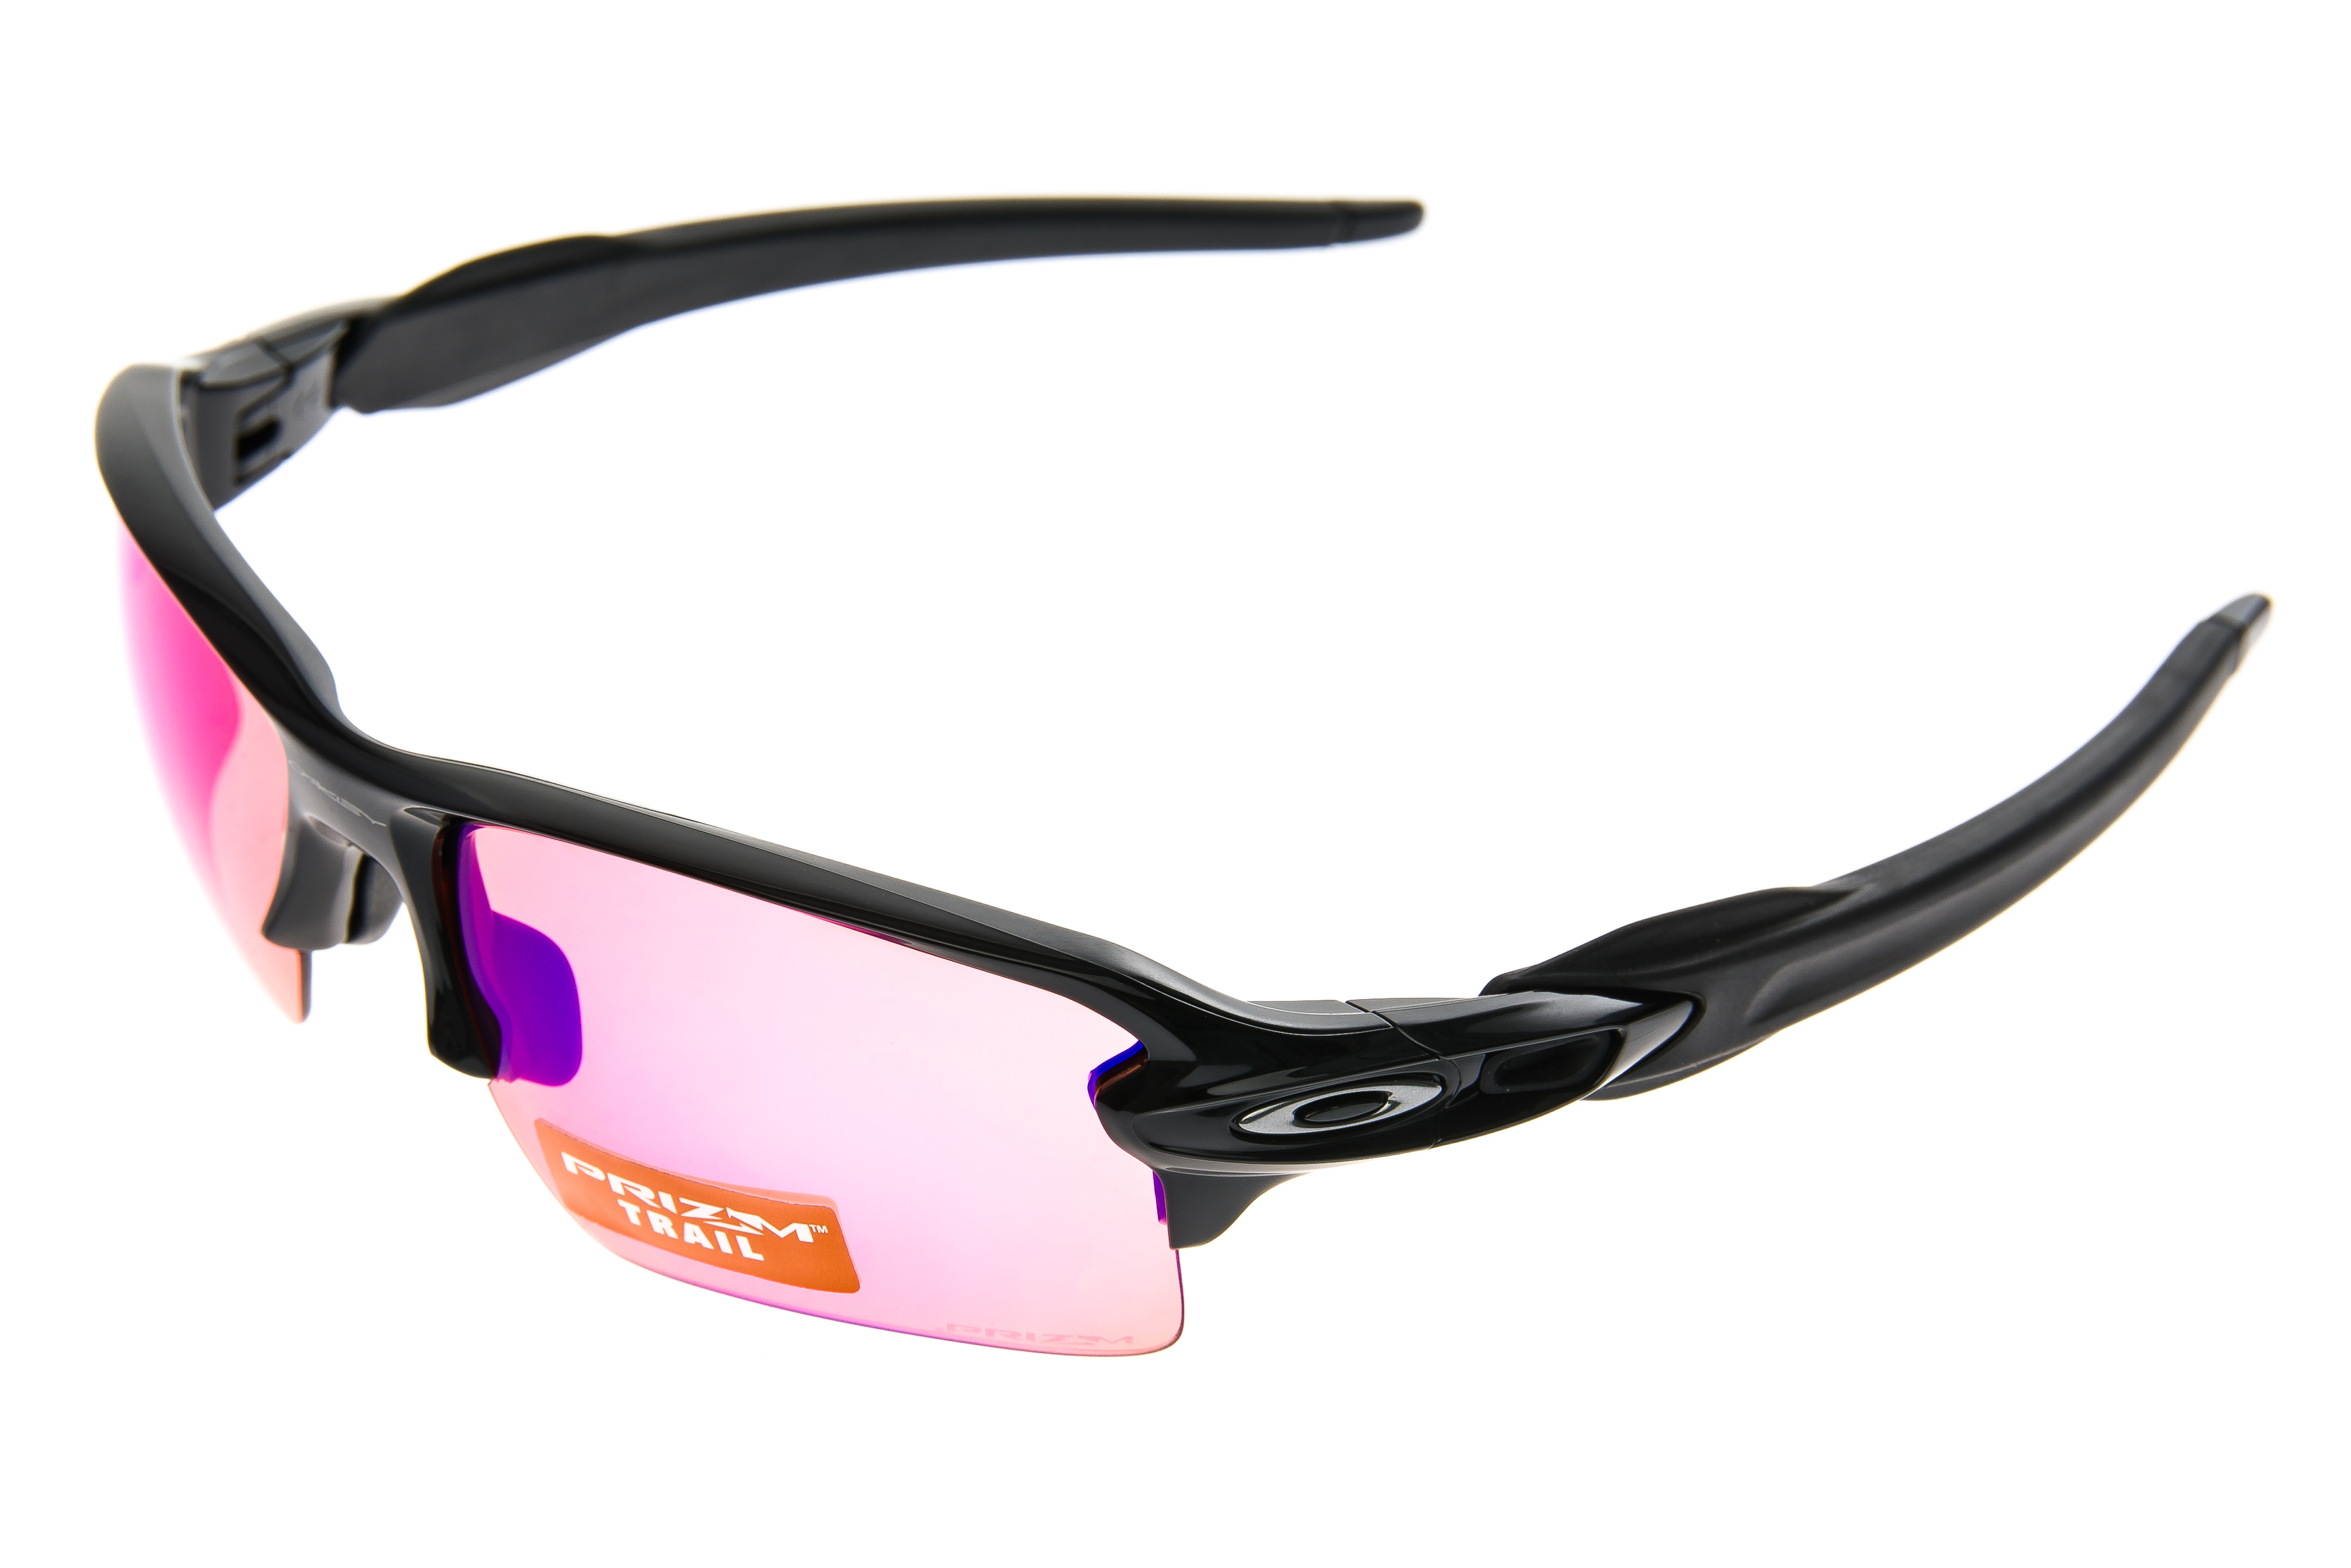 72775e35a1 Details about Oakley Flak 2.0 Sunglasses Polished Black Frame Prizm Trail  Lens